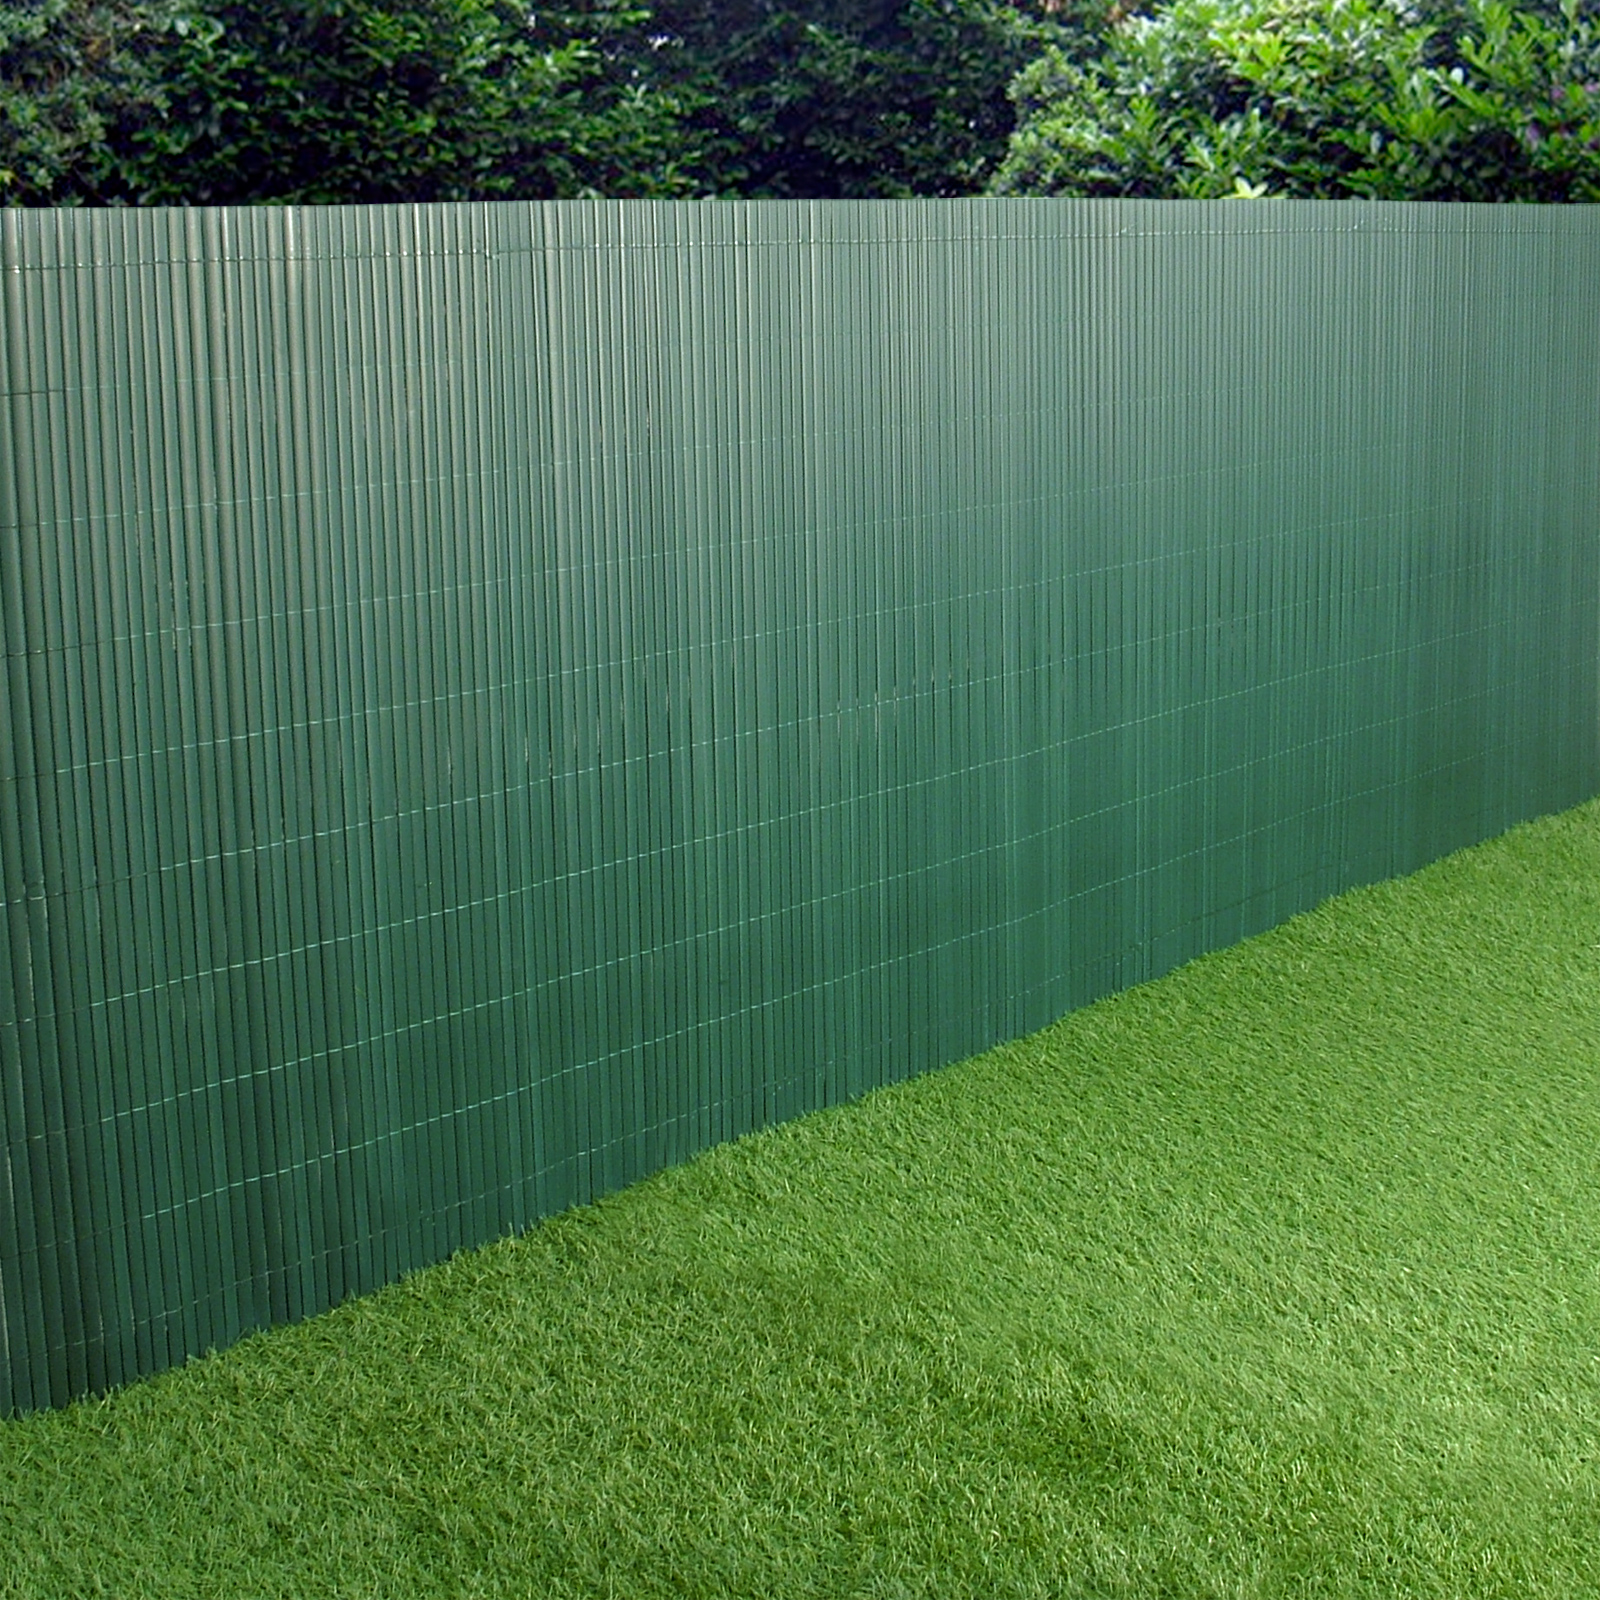 Details about PVC Garden Fence Plastic Panel Screen Double Faced Green ...